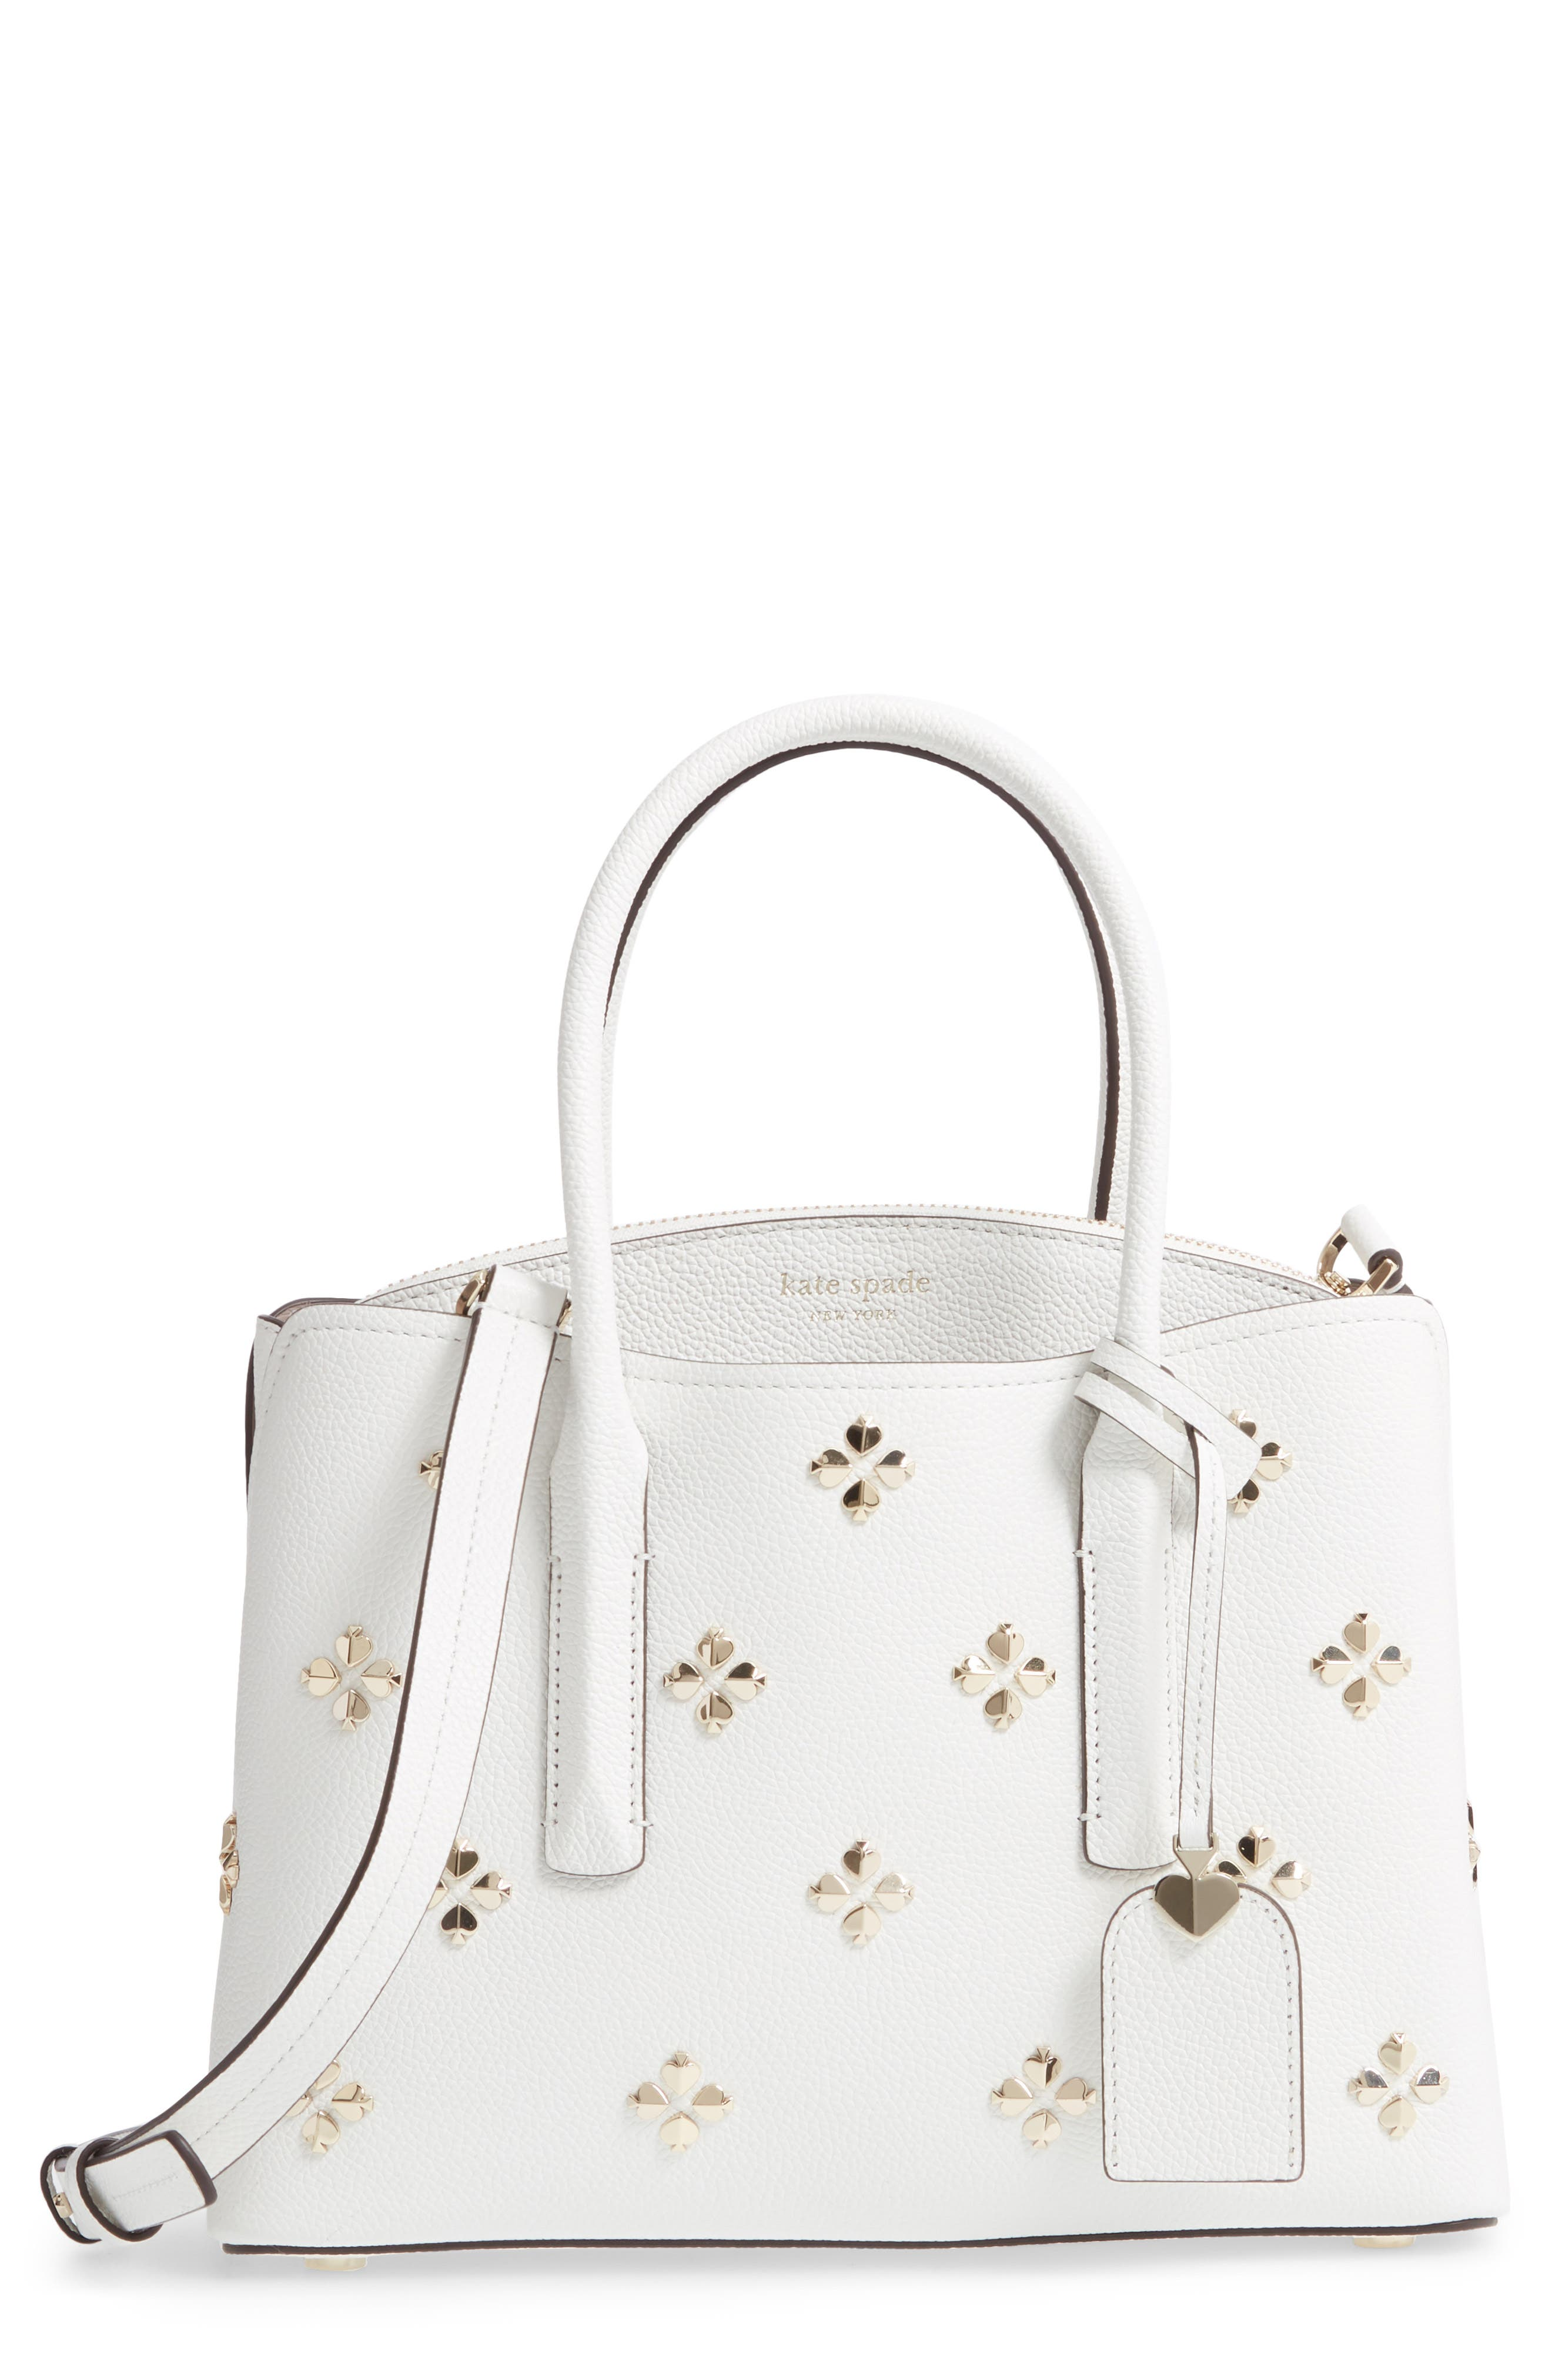 7837caea5bc8 kate spade new york Women's Bags